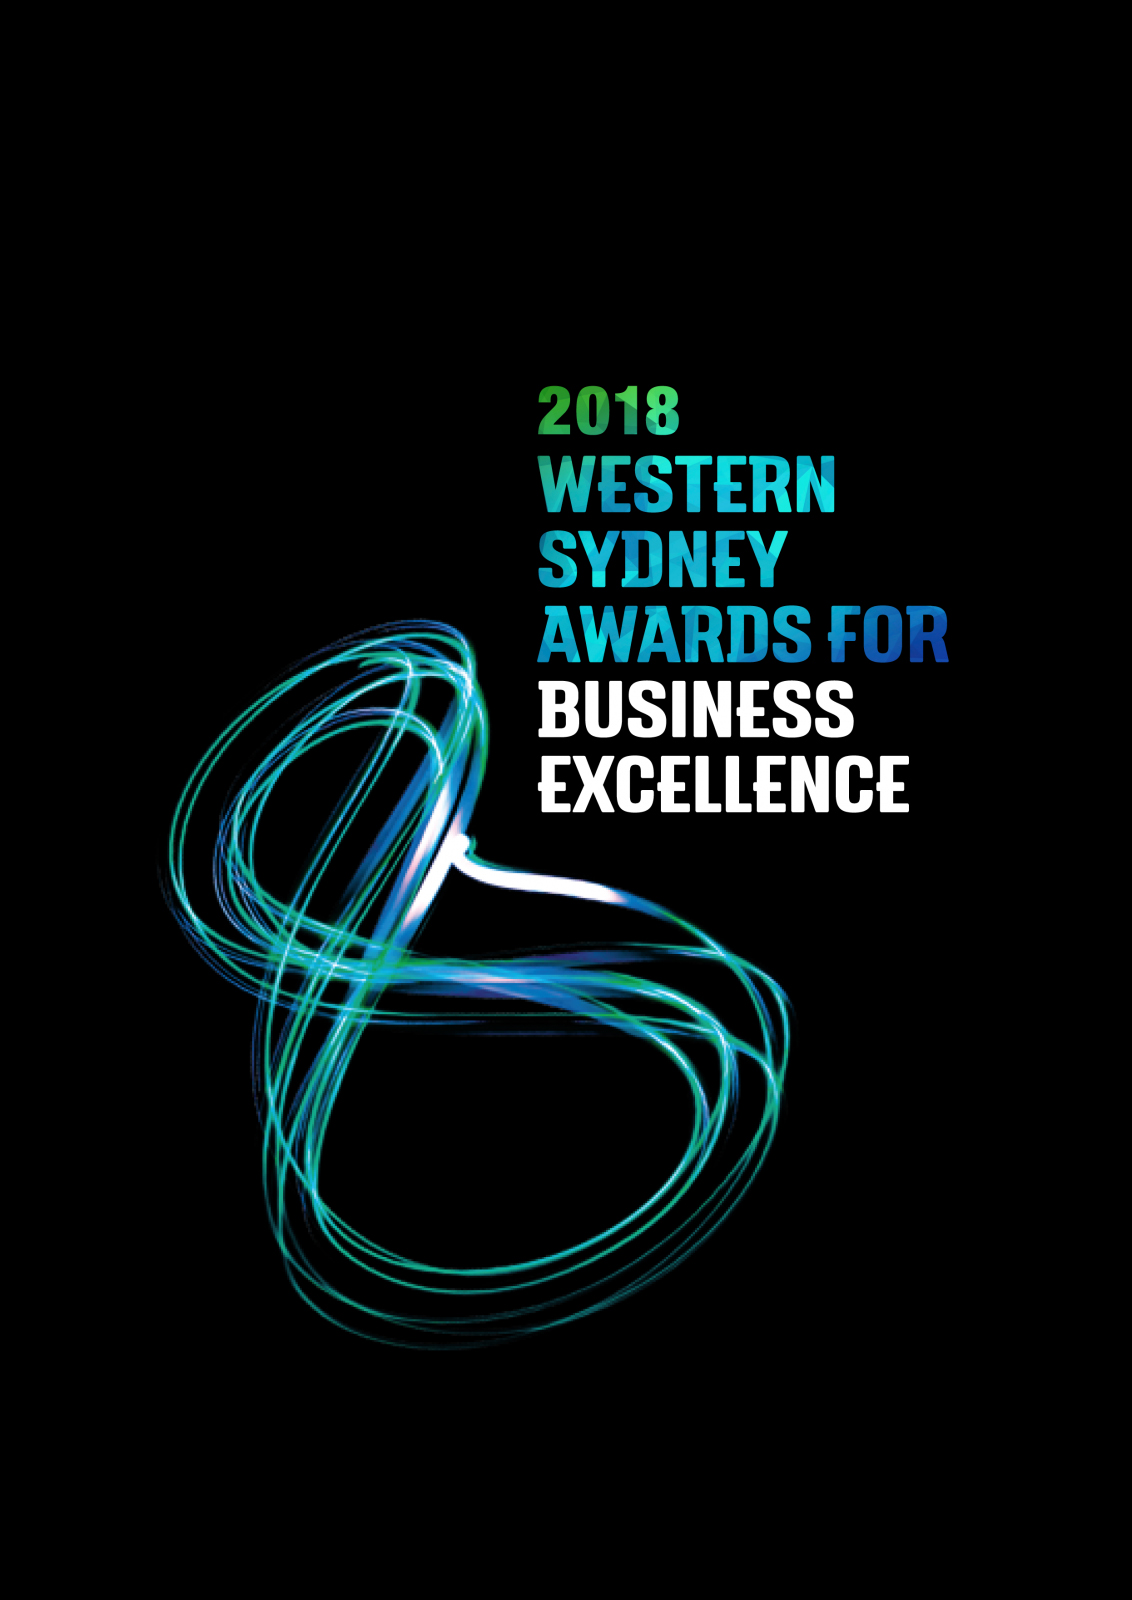 2018 Western Sydney Awards for Business Excellence (WSABE)